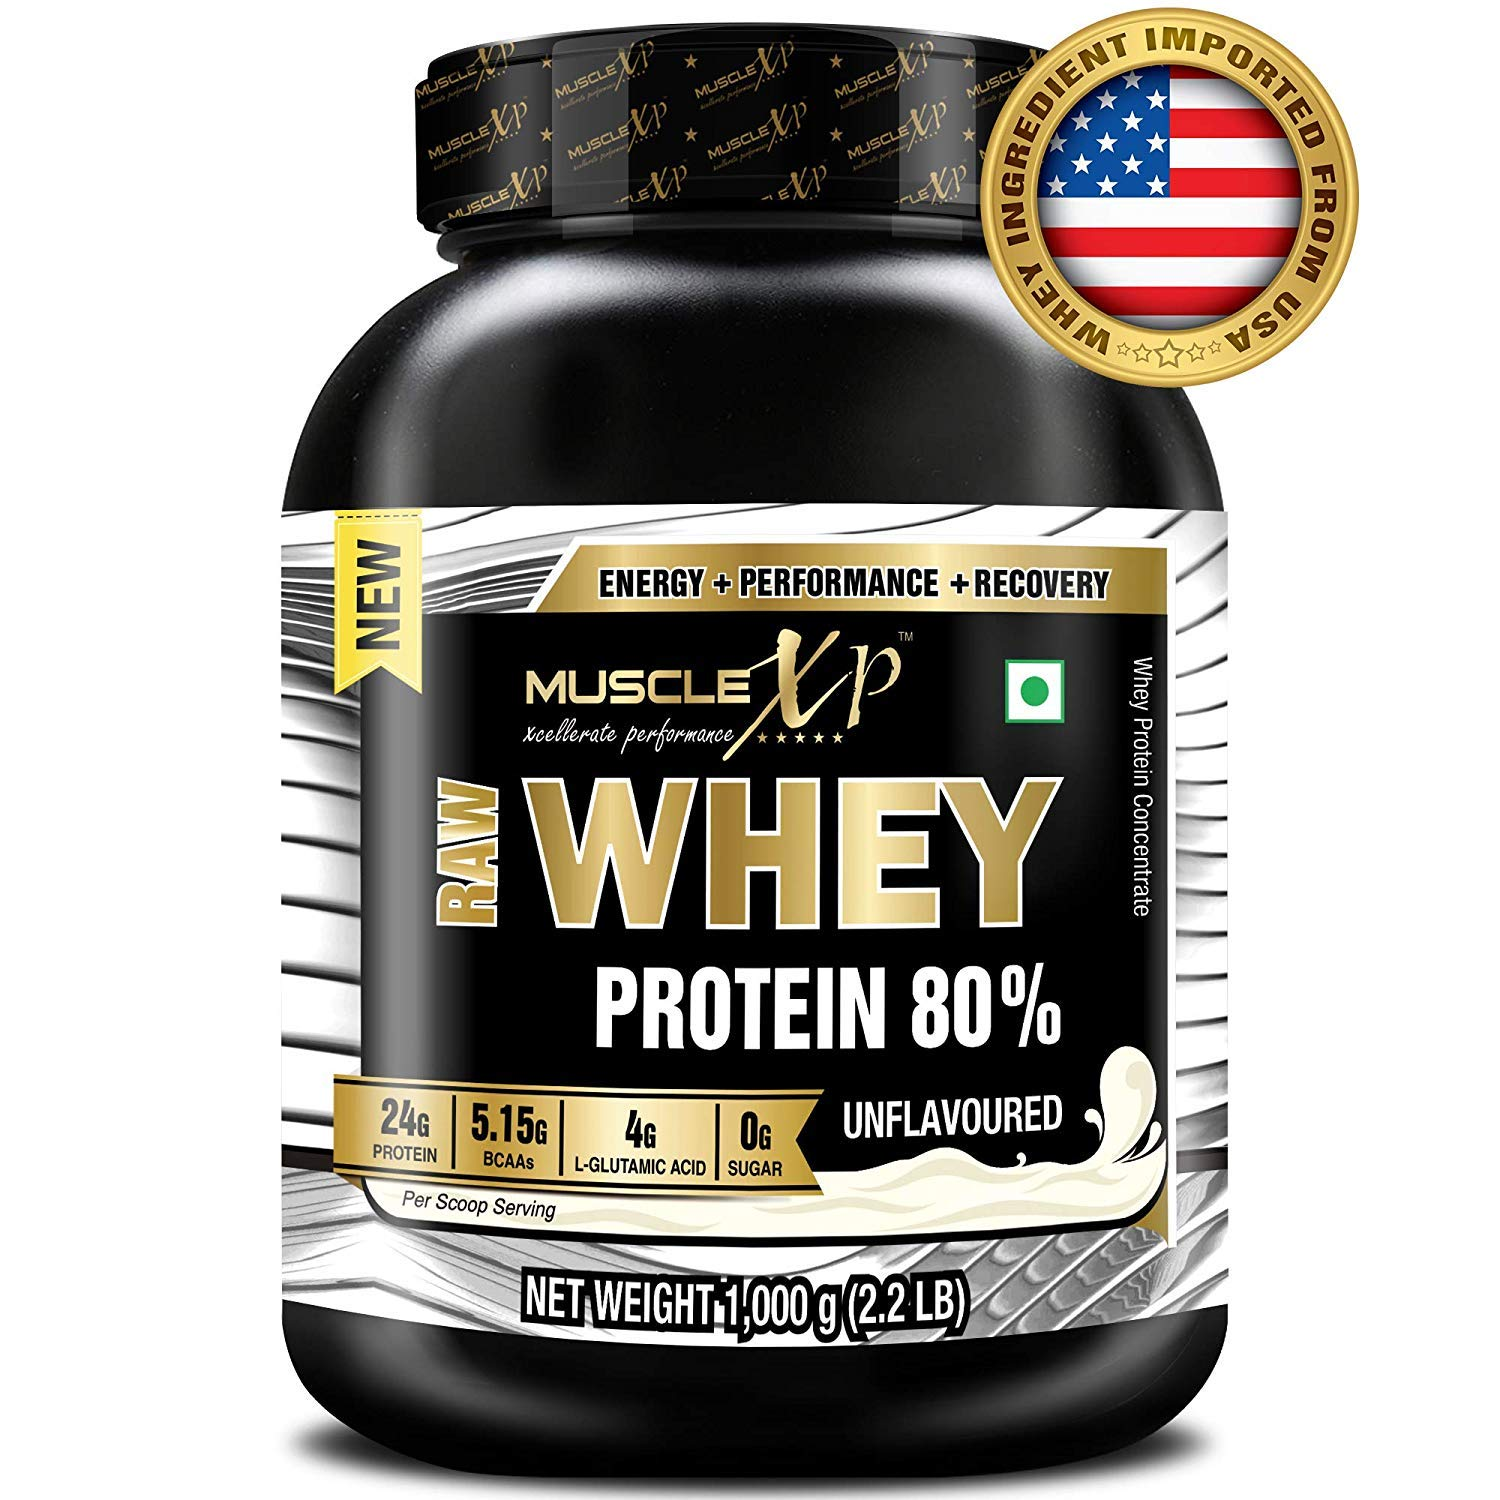 MuscleXP Raw Whey Protein Concentrate 80 Powder Unflavored